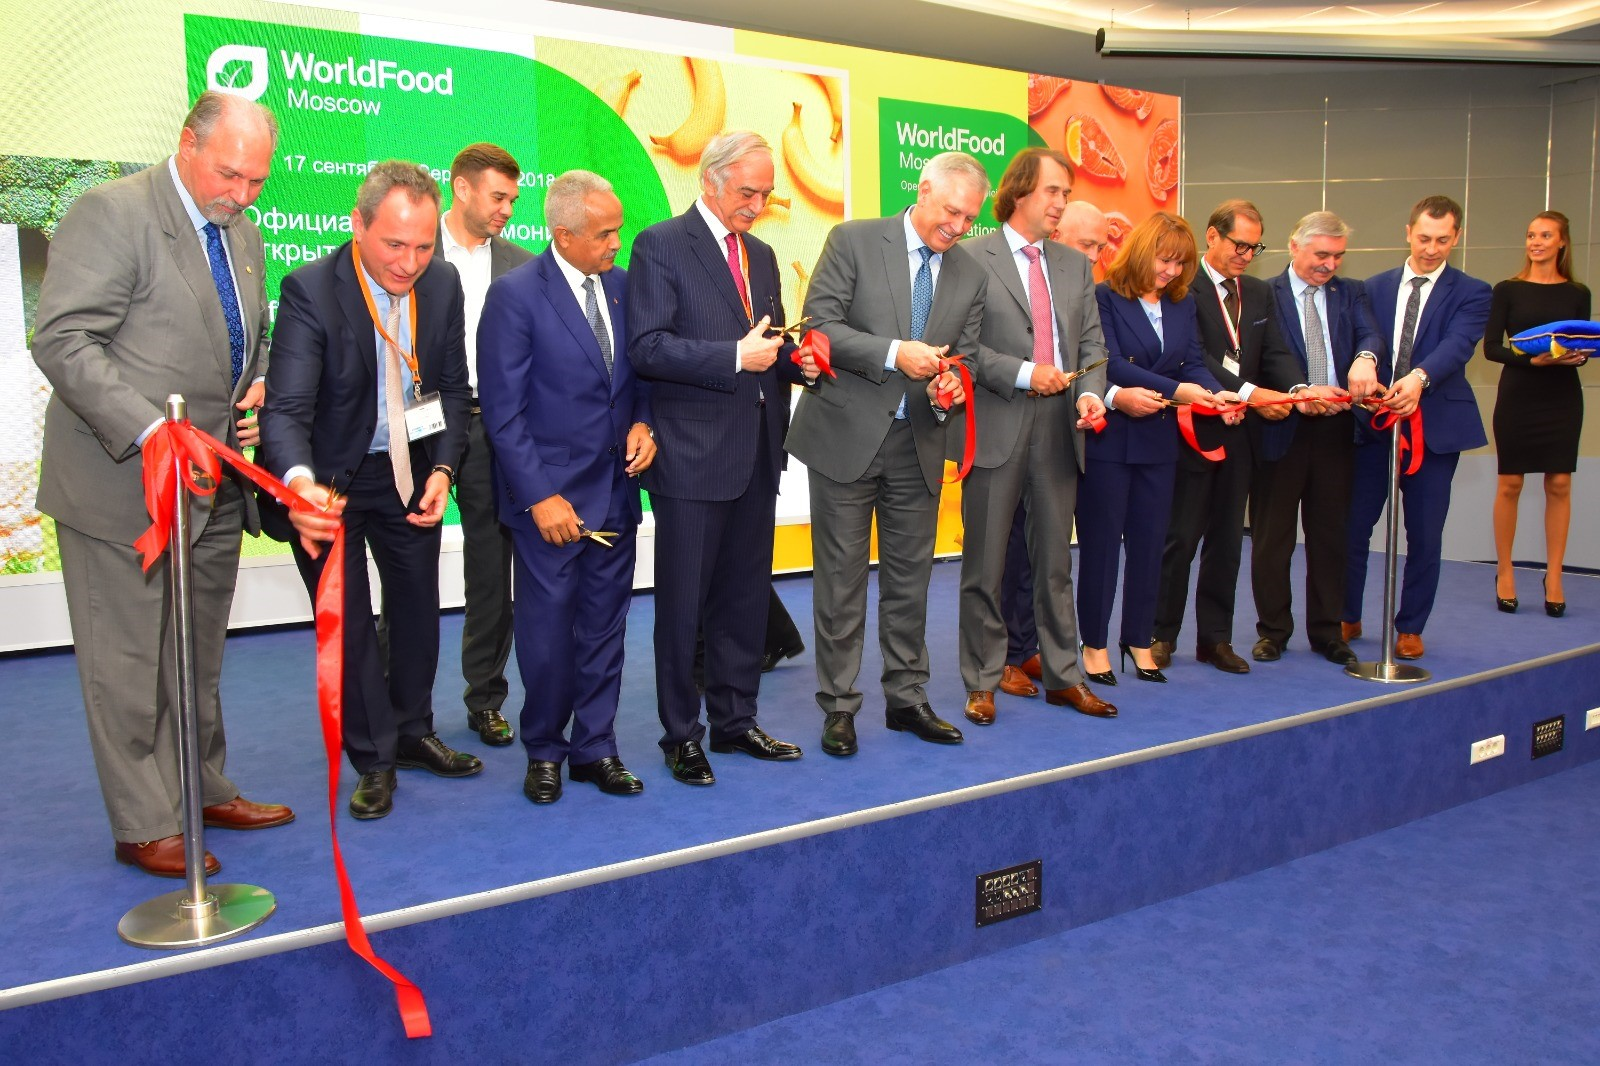 WorldFood Moscow 2019 hosted more than 1,500 suppliers from 65 countries and 40 Russian regions, attracting more than 30,000 visito